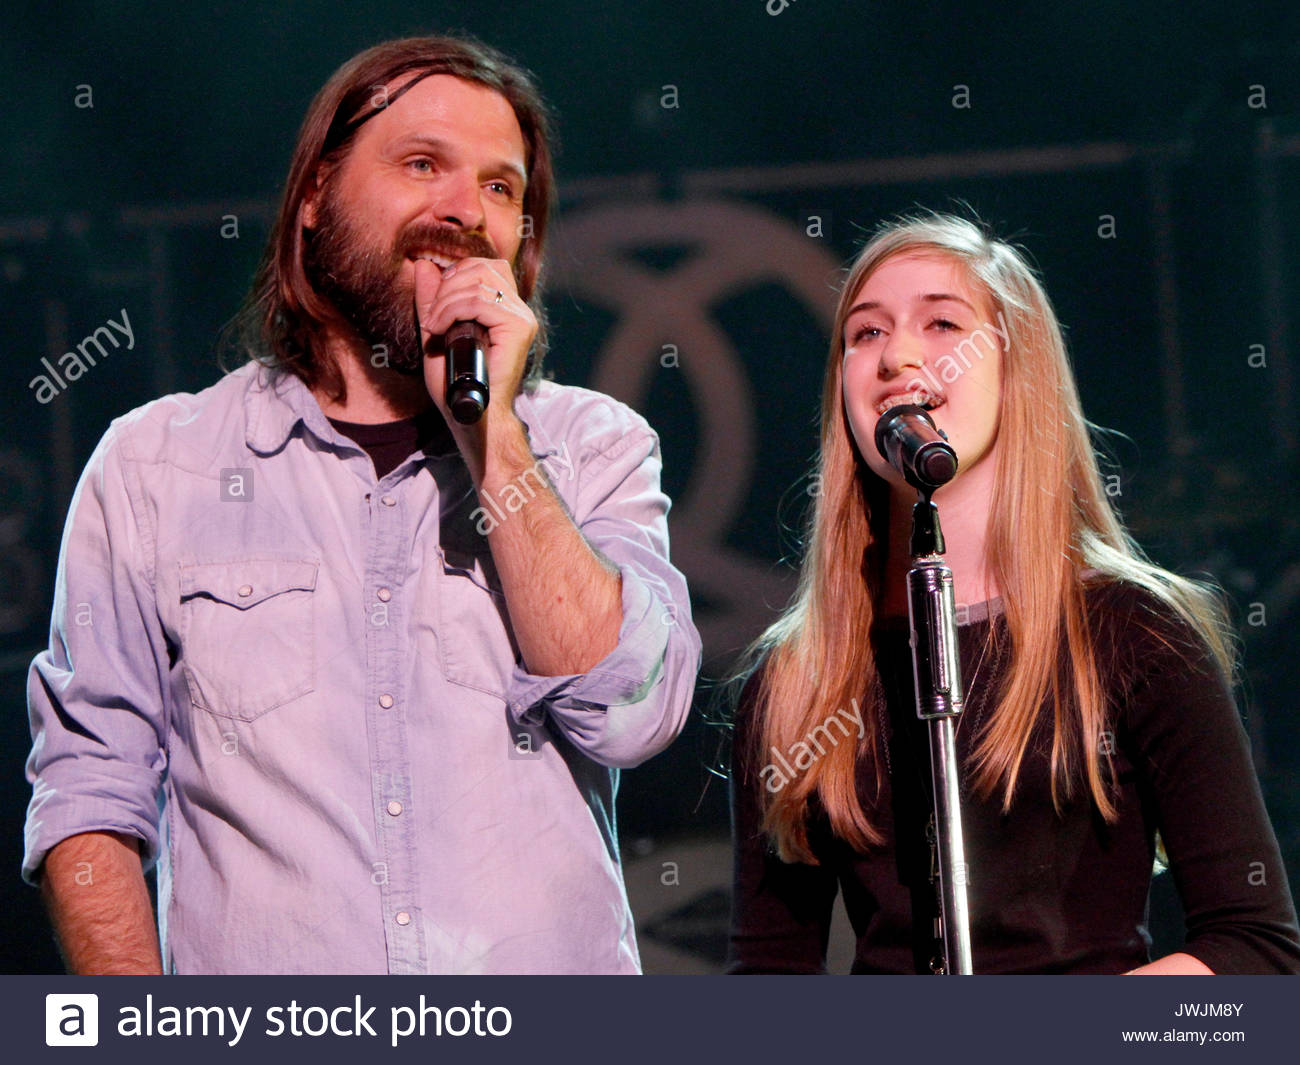 Mac Powell and Scout Powell. Christian rock band Third Day made a stop on their Miracle Tour at the Fox Theater - Stock Image